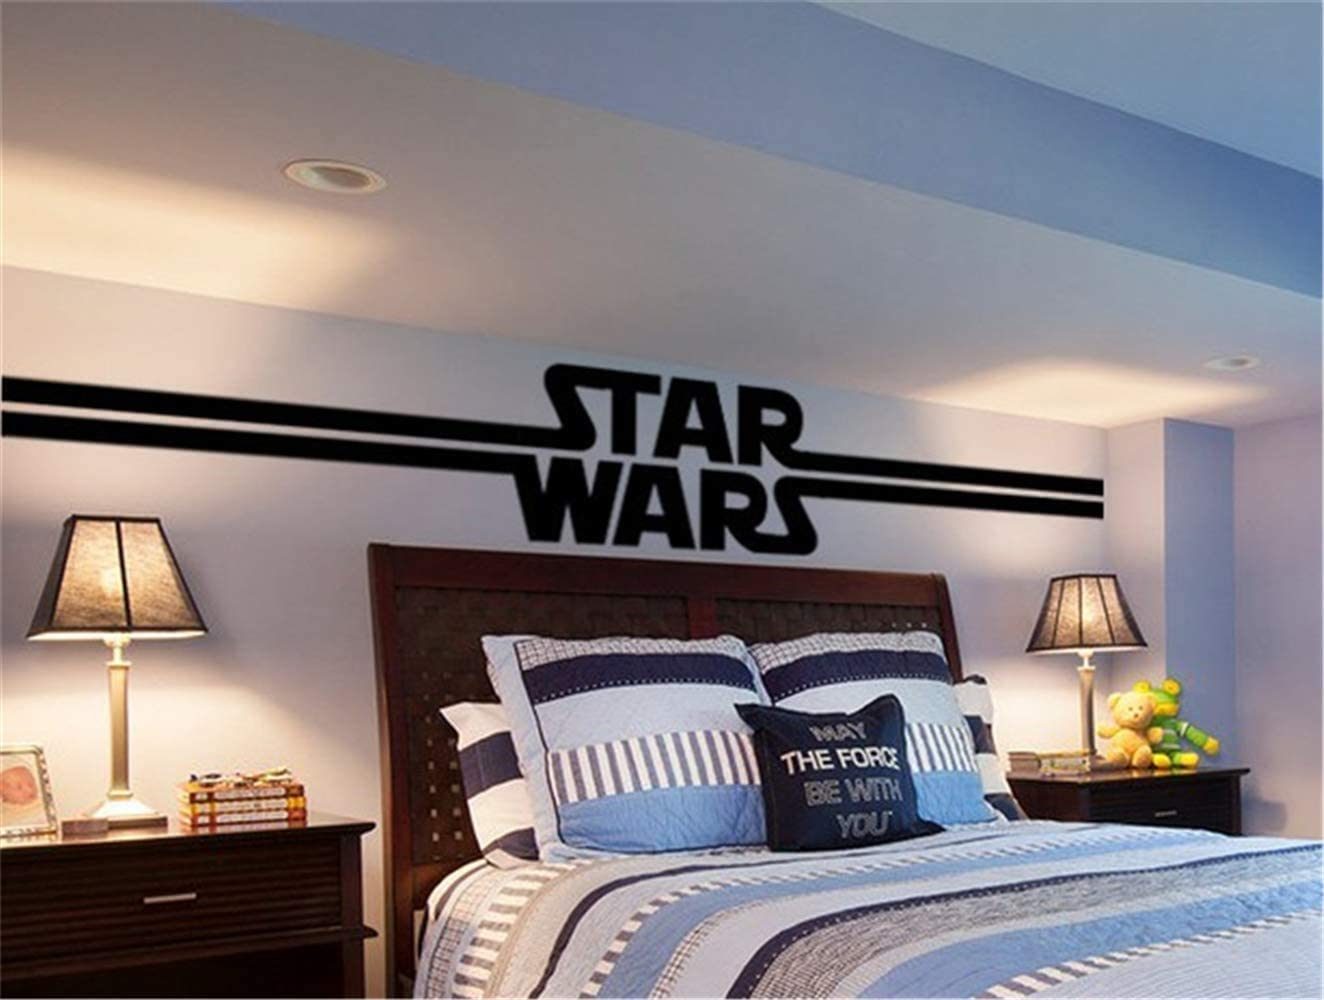 Pqzqmq Star Wars Wall Decal Stickers for Bedroom Living Room